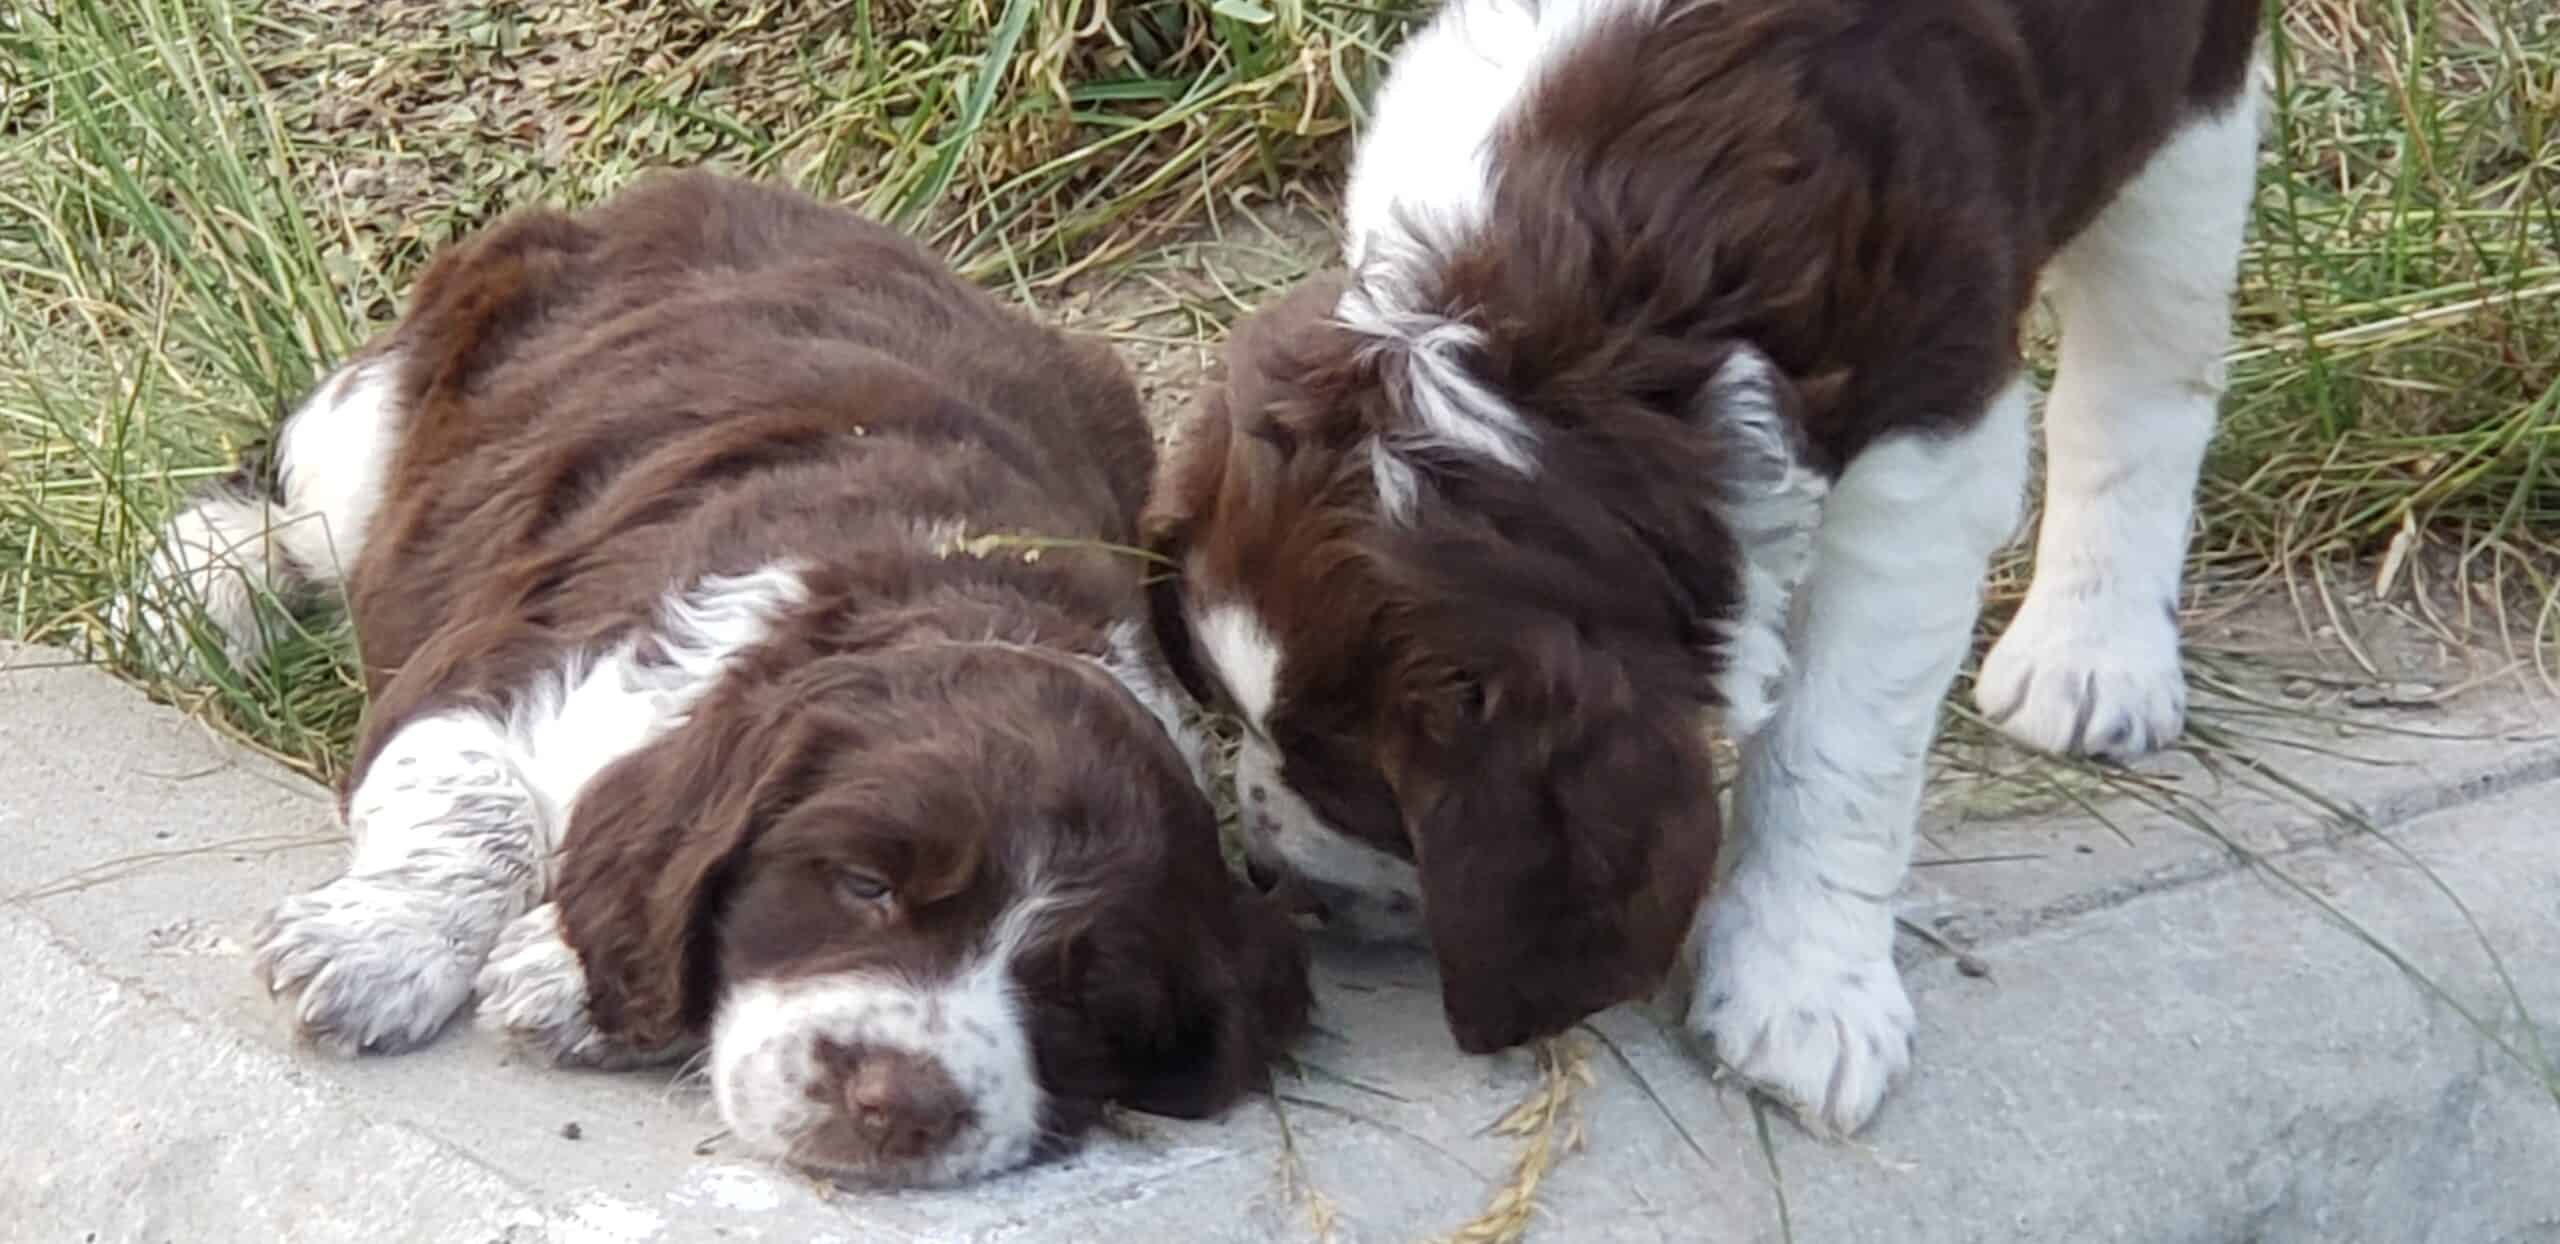 AKC-Puppies ready for pets and/or field training!